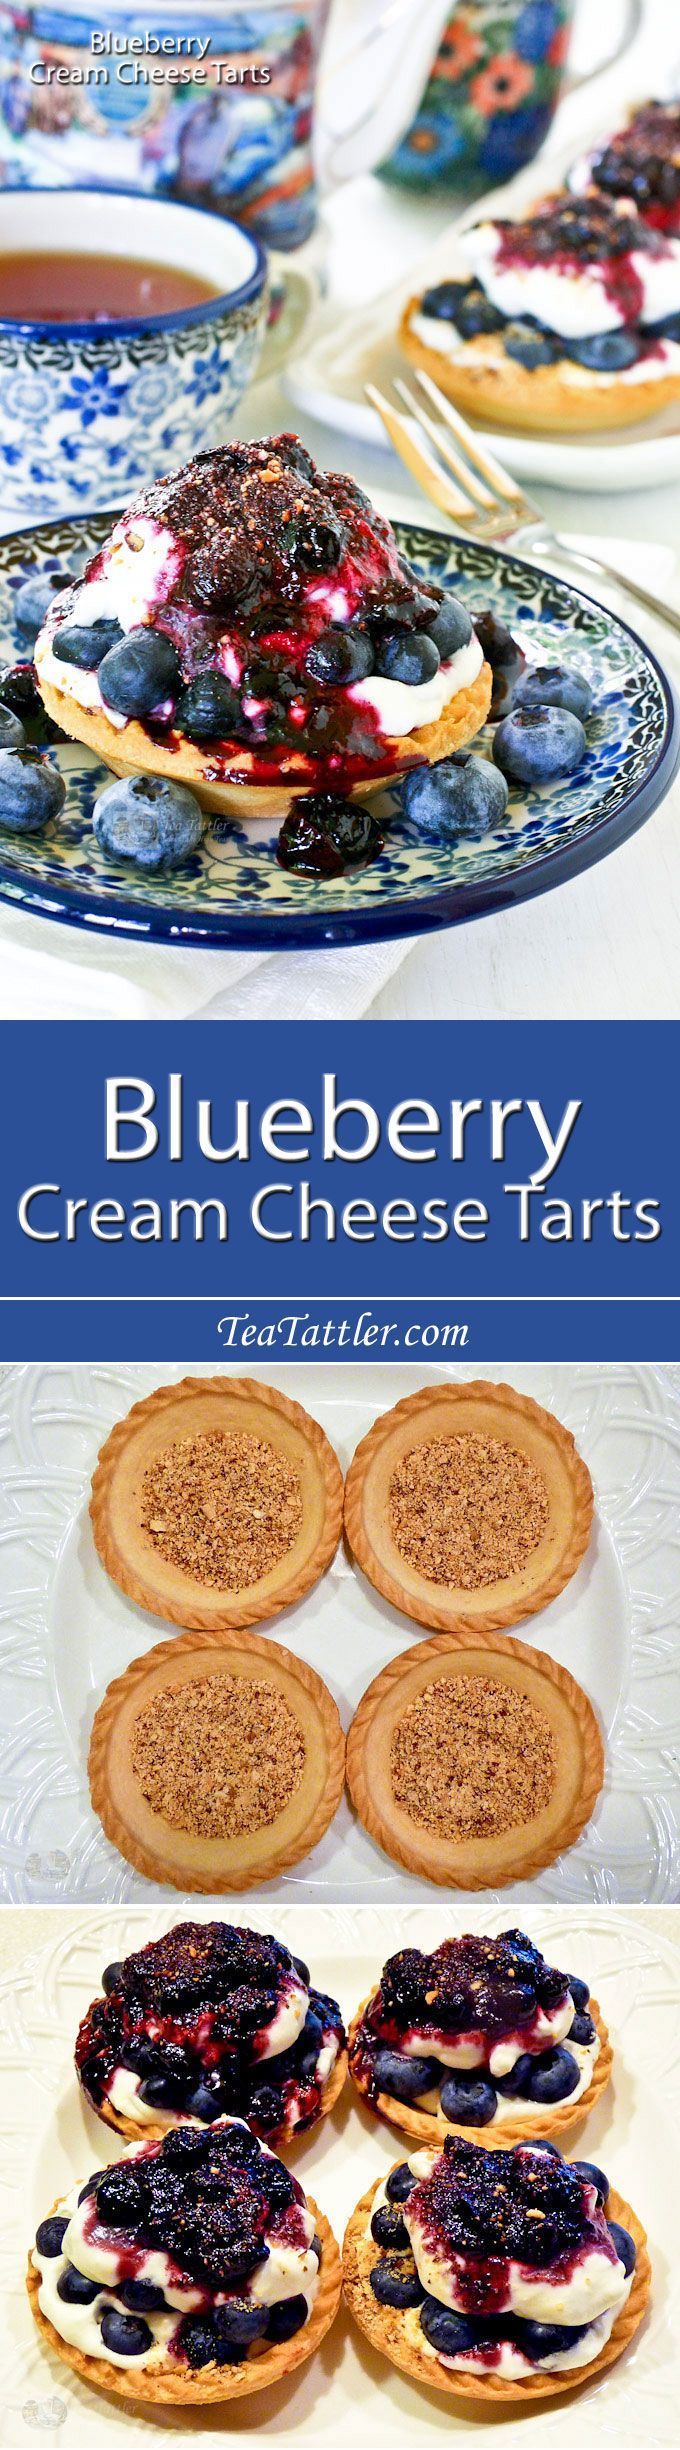 Easy to assemble Blueberry Cream Cheese Tarts using ready-to-fill tart shells. Only minutes to prepare the toppings and sauce on the stove top.   http://TeaTattler.com